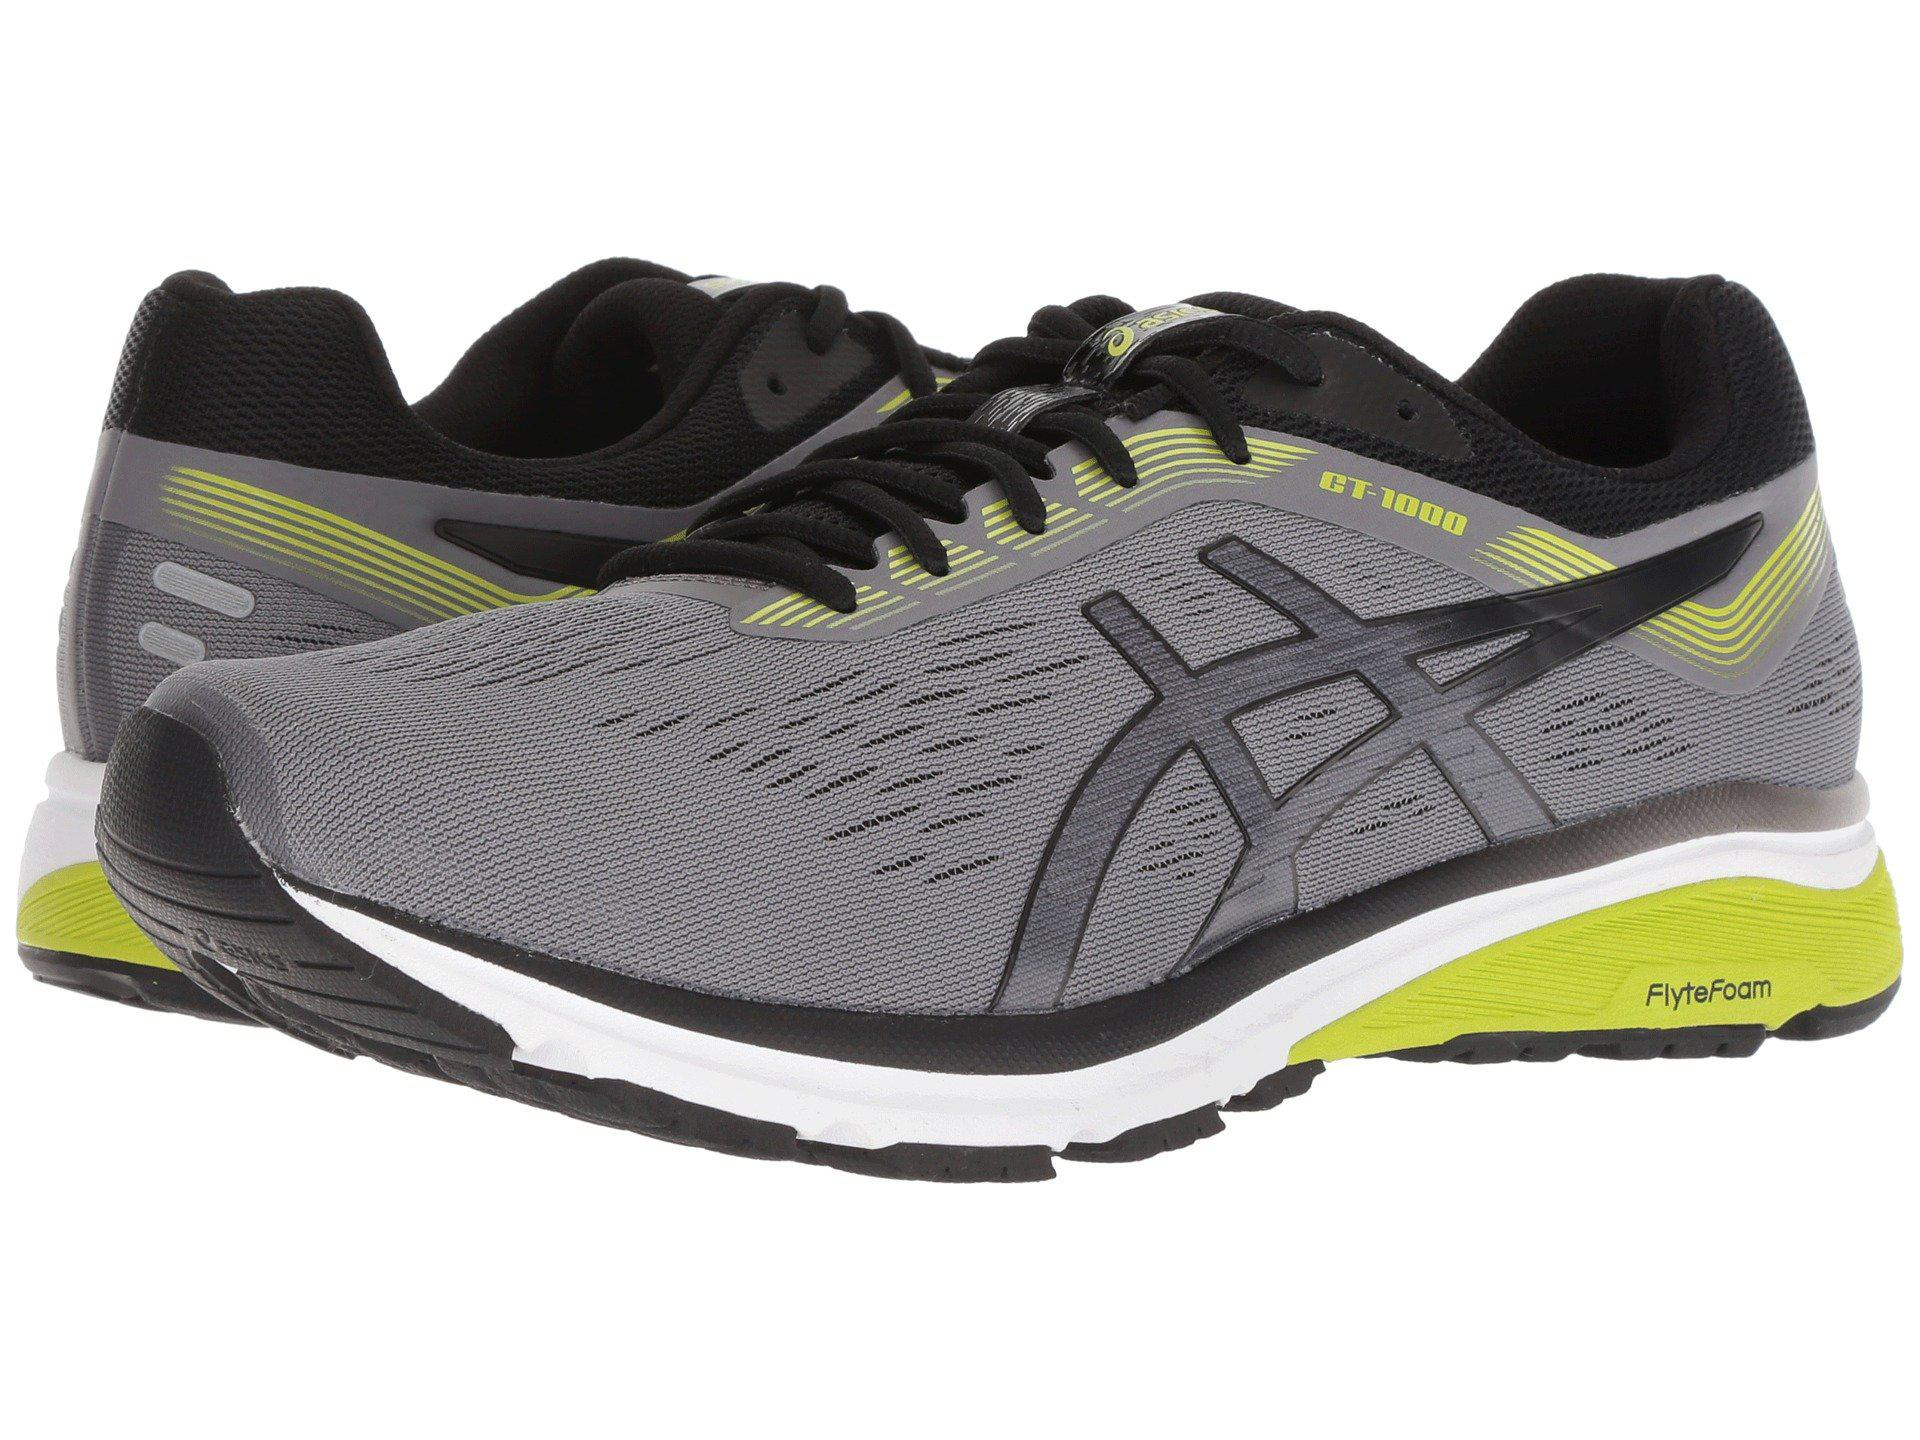 ee6e699fc8dcf Lyst - Asics Gt-1000 7 (stone Grey) Men s Running Shoes in Black for Men